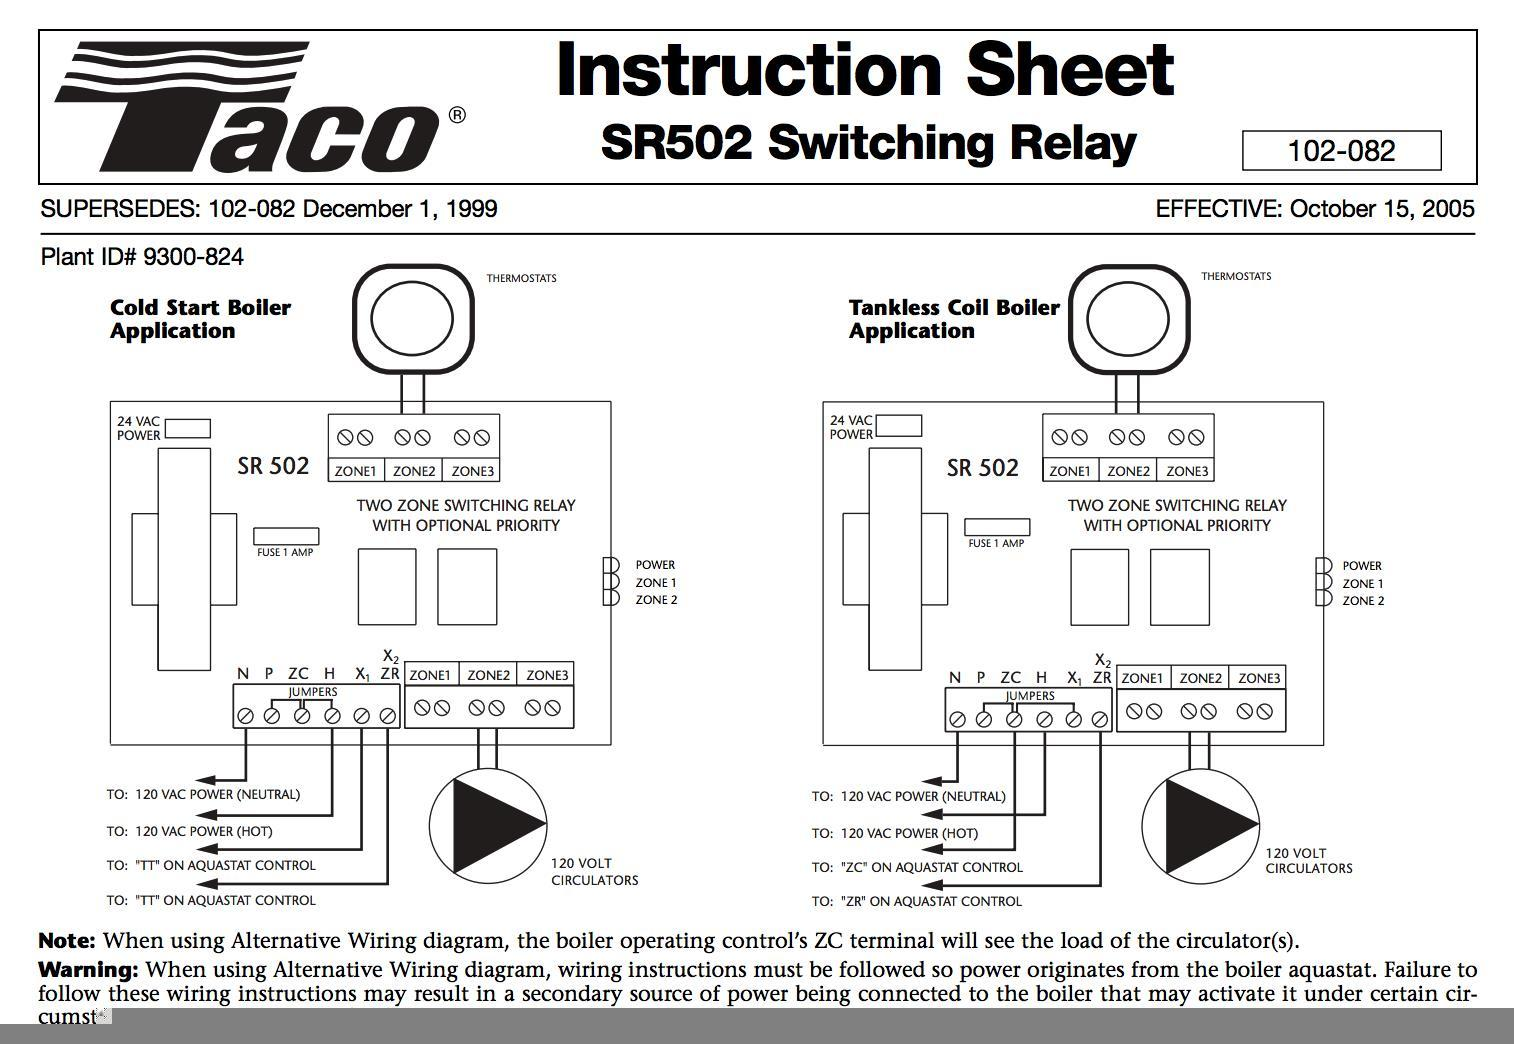 [SCHEMATICS_48ZD]  DR_4865] Taco Switching Relay Wiring Diagram Get Free Image About Wiring  Wiring Diagram | Zvc404 Wiring Diagram |  | Sapebe Leona Mecad Dadea Hendil Mohammedshrine Librar Wiring 101